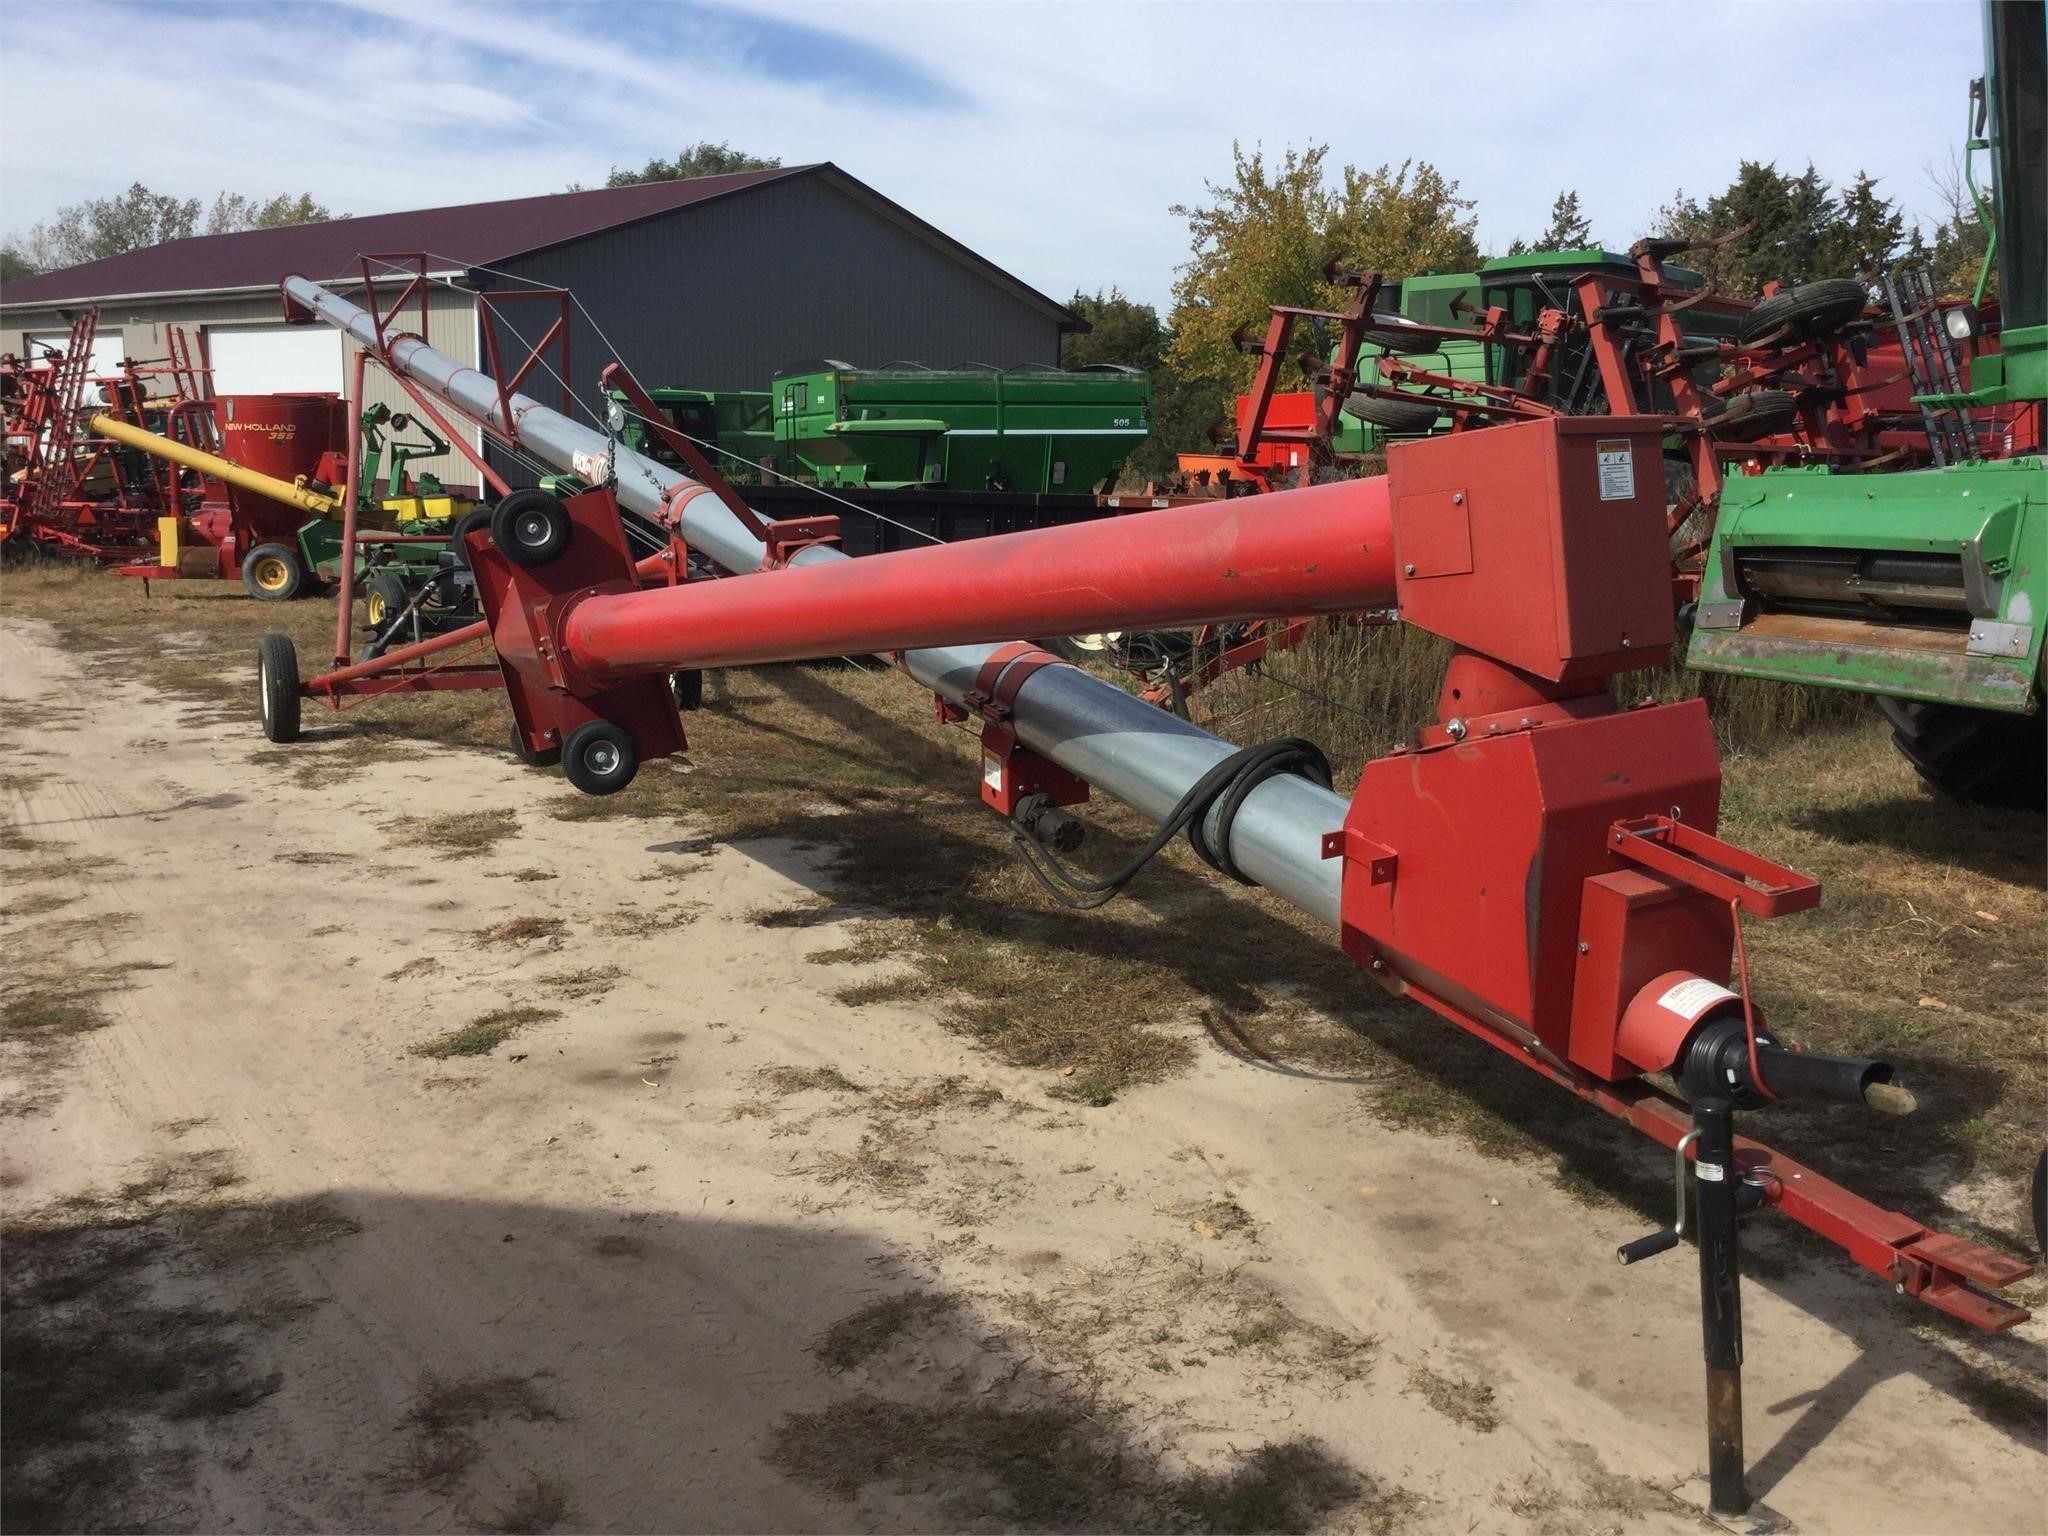 2009 Peck 10x66 Augers and Conveyor